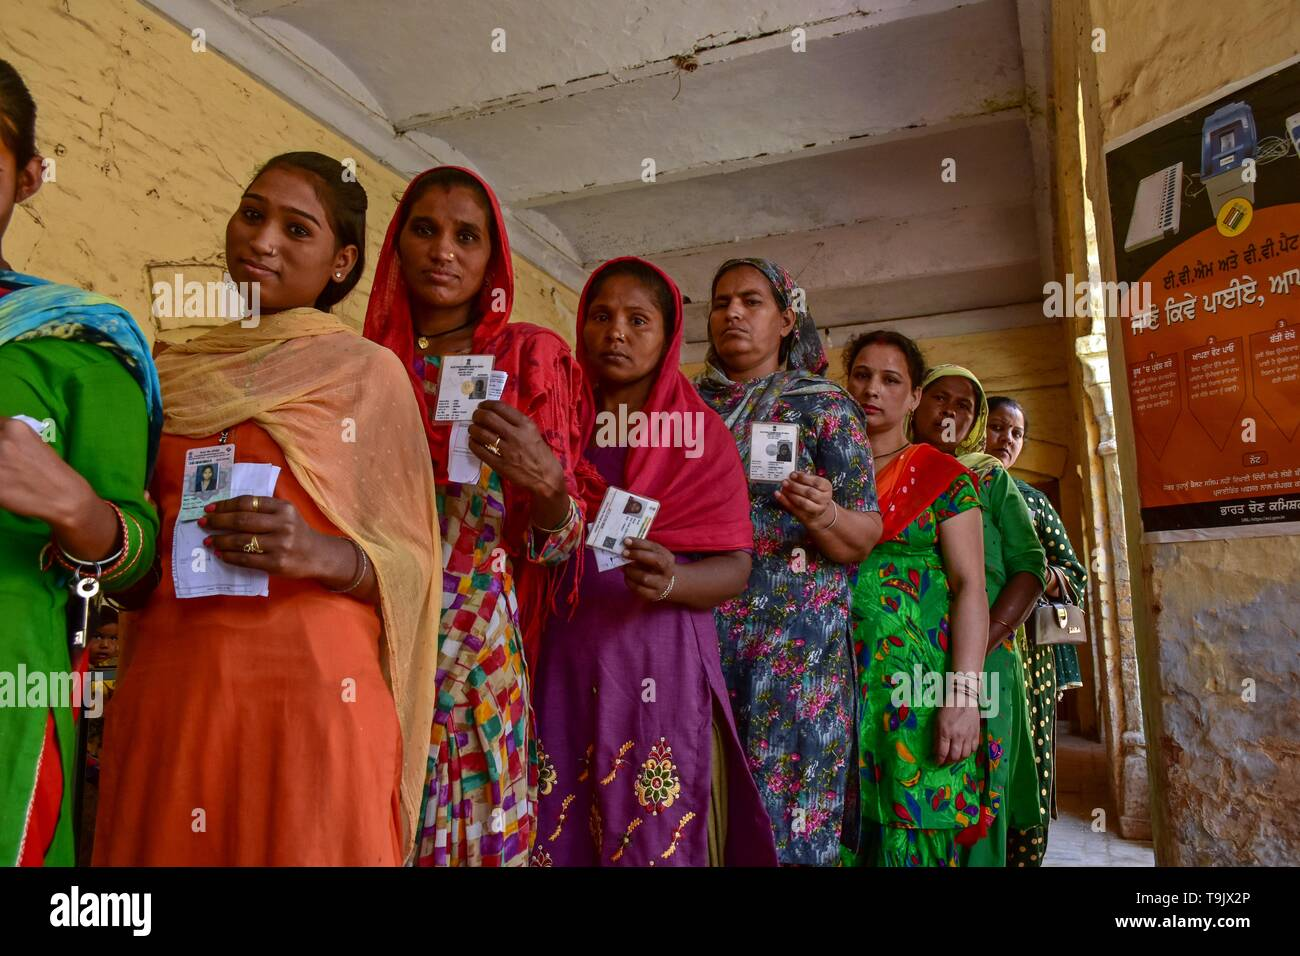 Indian women seen showing their identity cards as they queue to cast their vote at a polling station during the final phase of India's general election in Patiala district of Punjab. Voting has begun for the final phase of Lok Sabha elections in Punjab, Bihar, West Bengal, Madhya Pradesh, Uttar Pradesh, Himachal Pradesh, Jharkhand and Chandigarh. Over 10.01 lakh voters will decide the fate of 918 candidates. The counting of votes will take place on May 23, officials said. - Stock Image